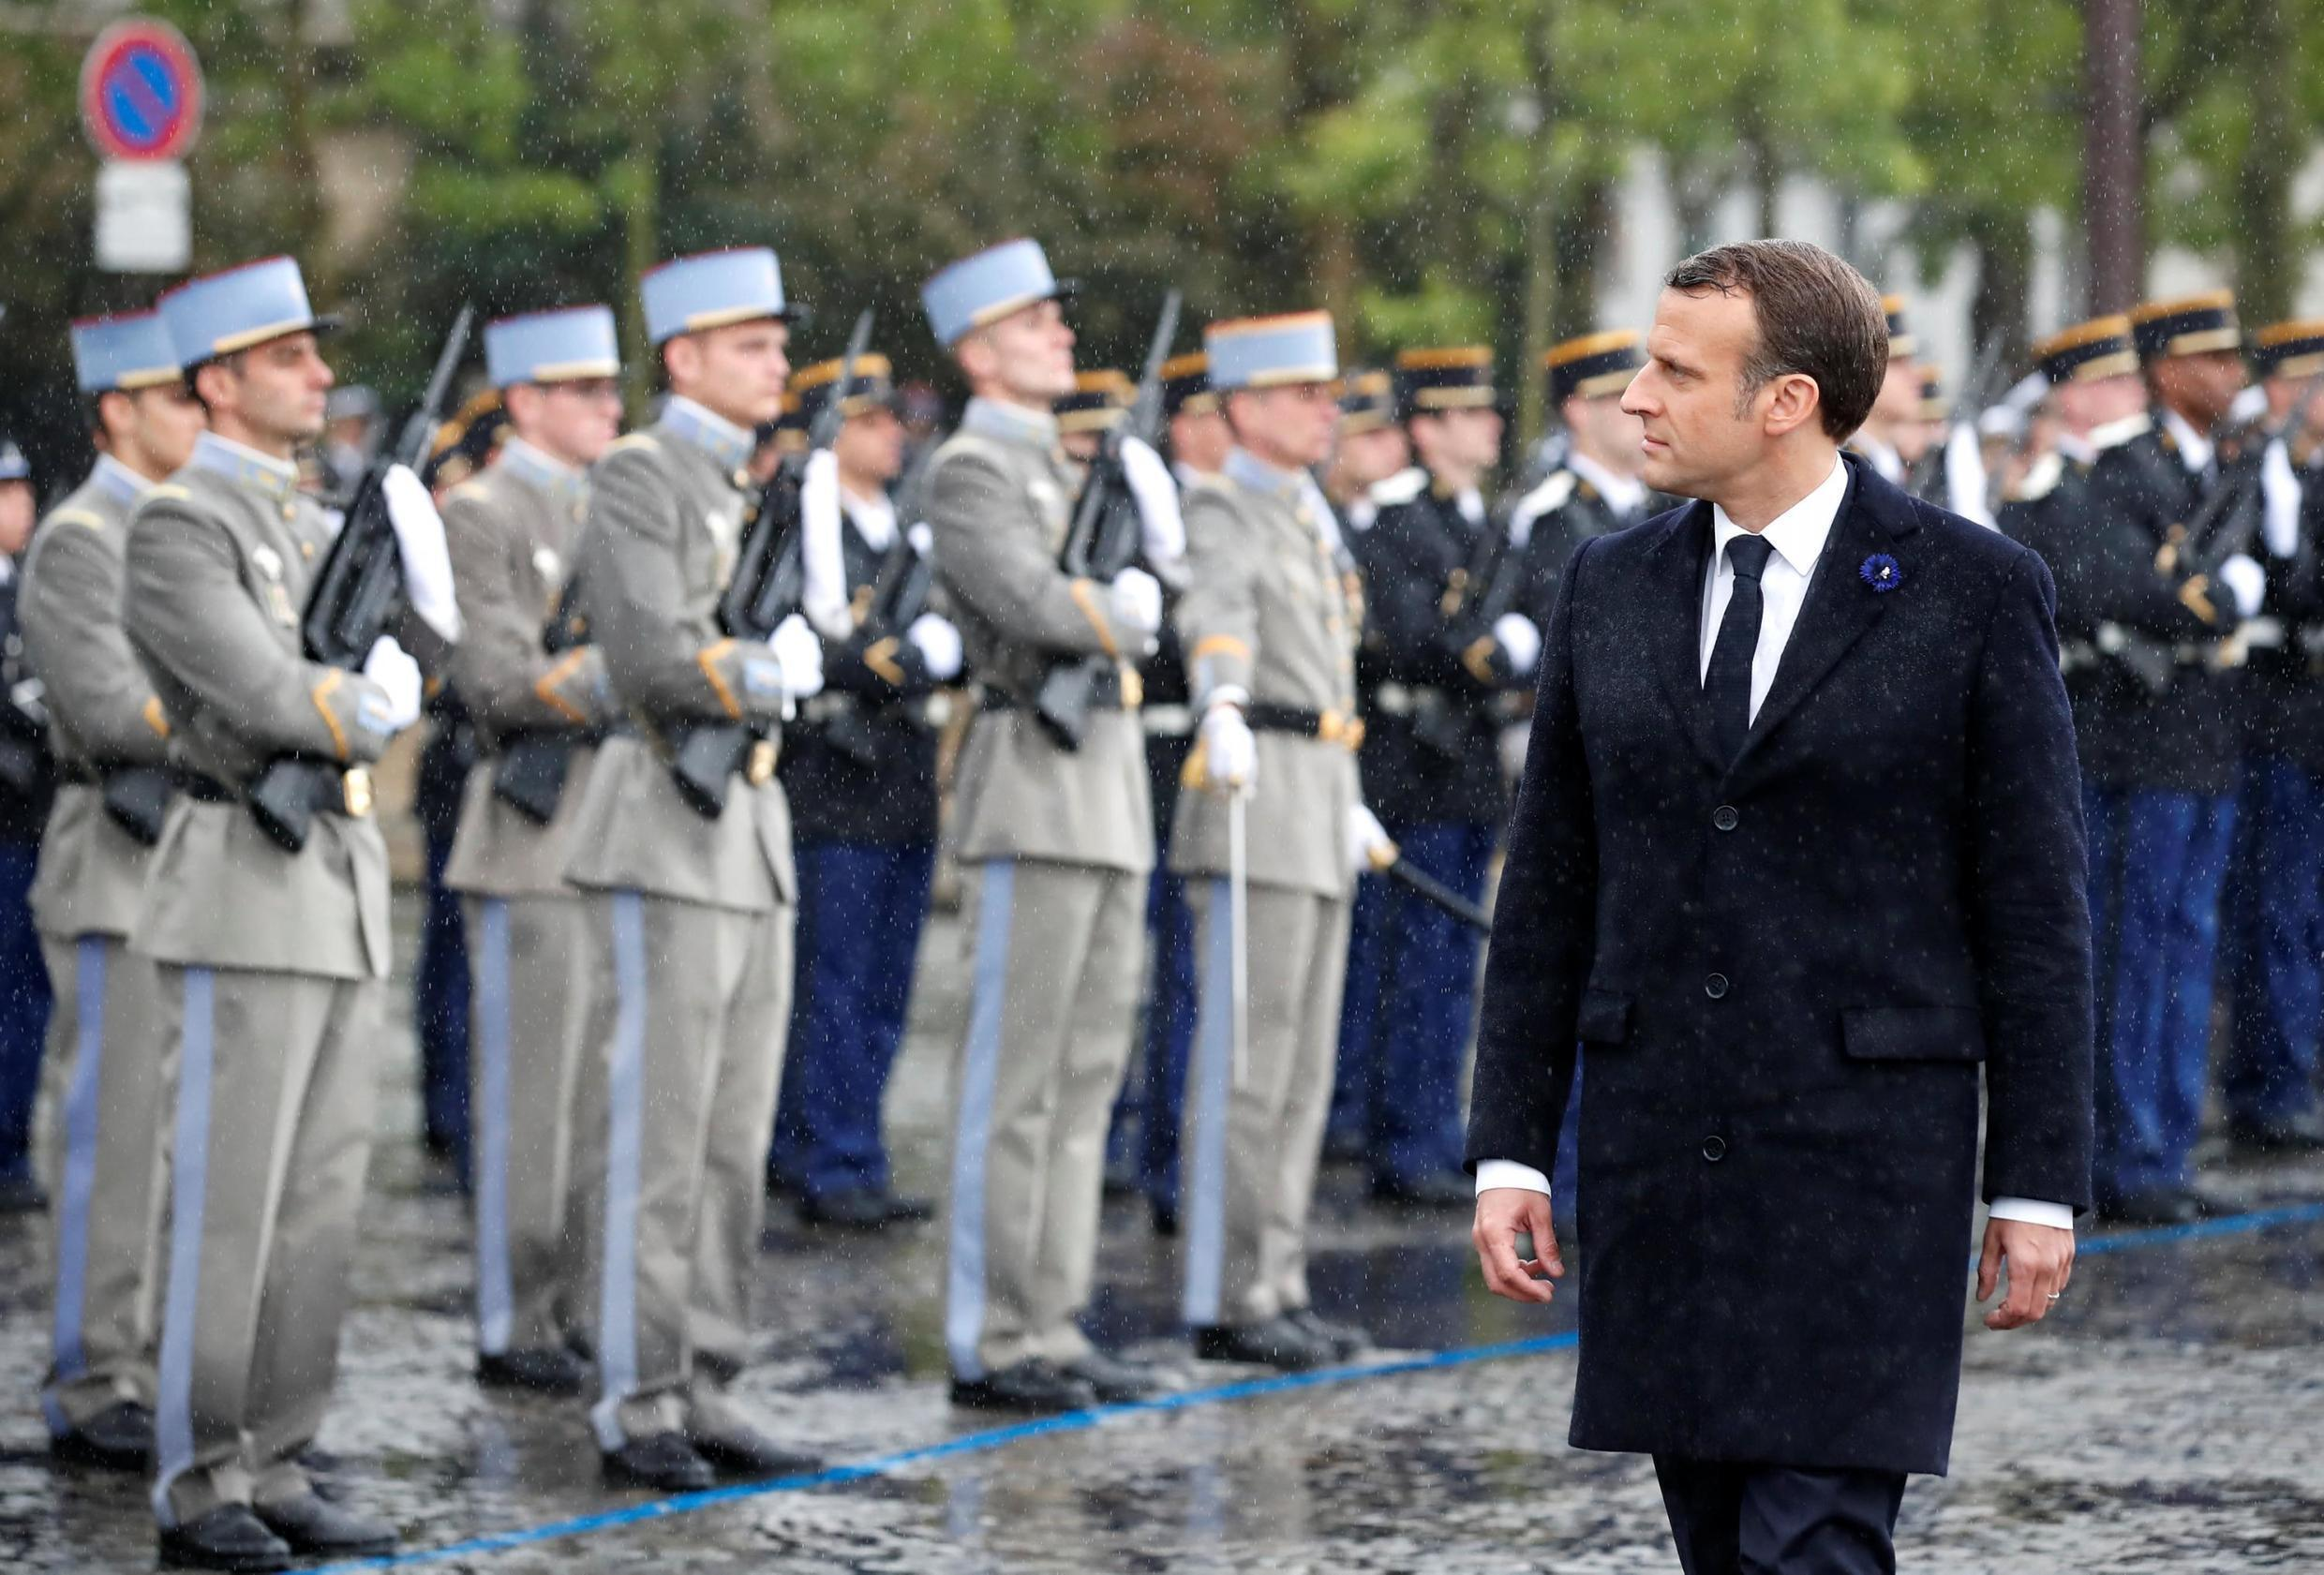 French President Emmanuel Macron reviews troops during a ceremony to mark the end of World War II at the Arc de Triomphe in Paris.